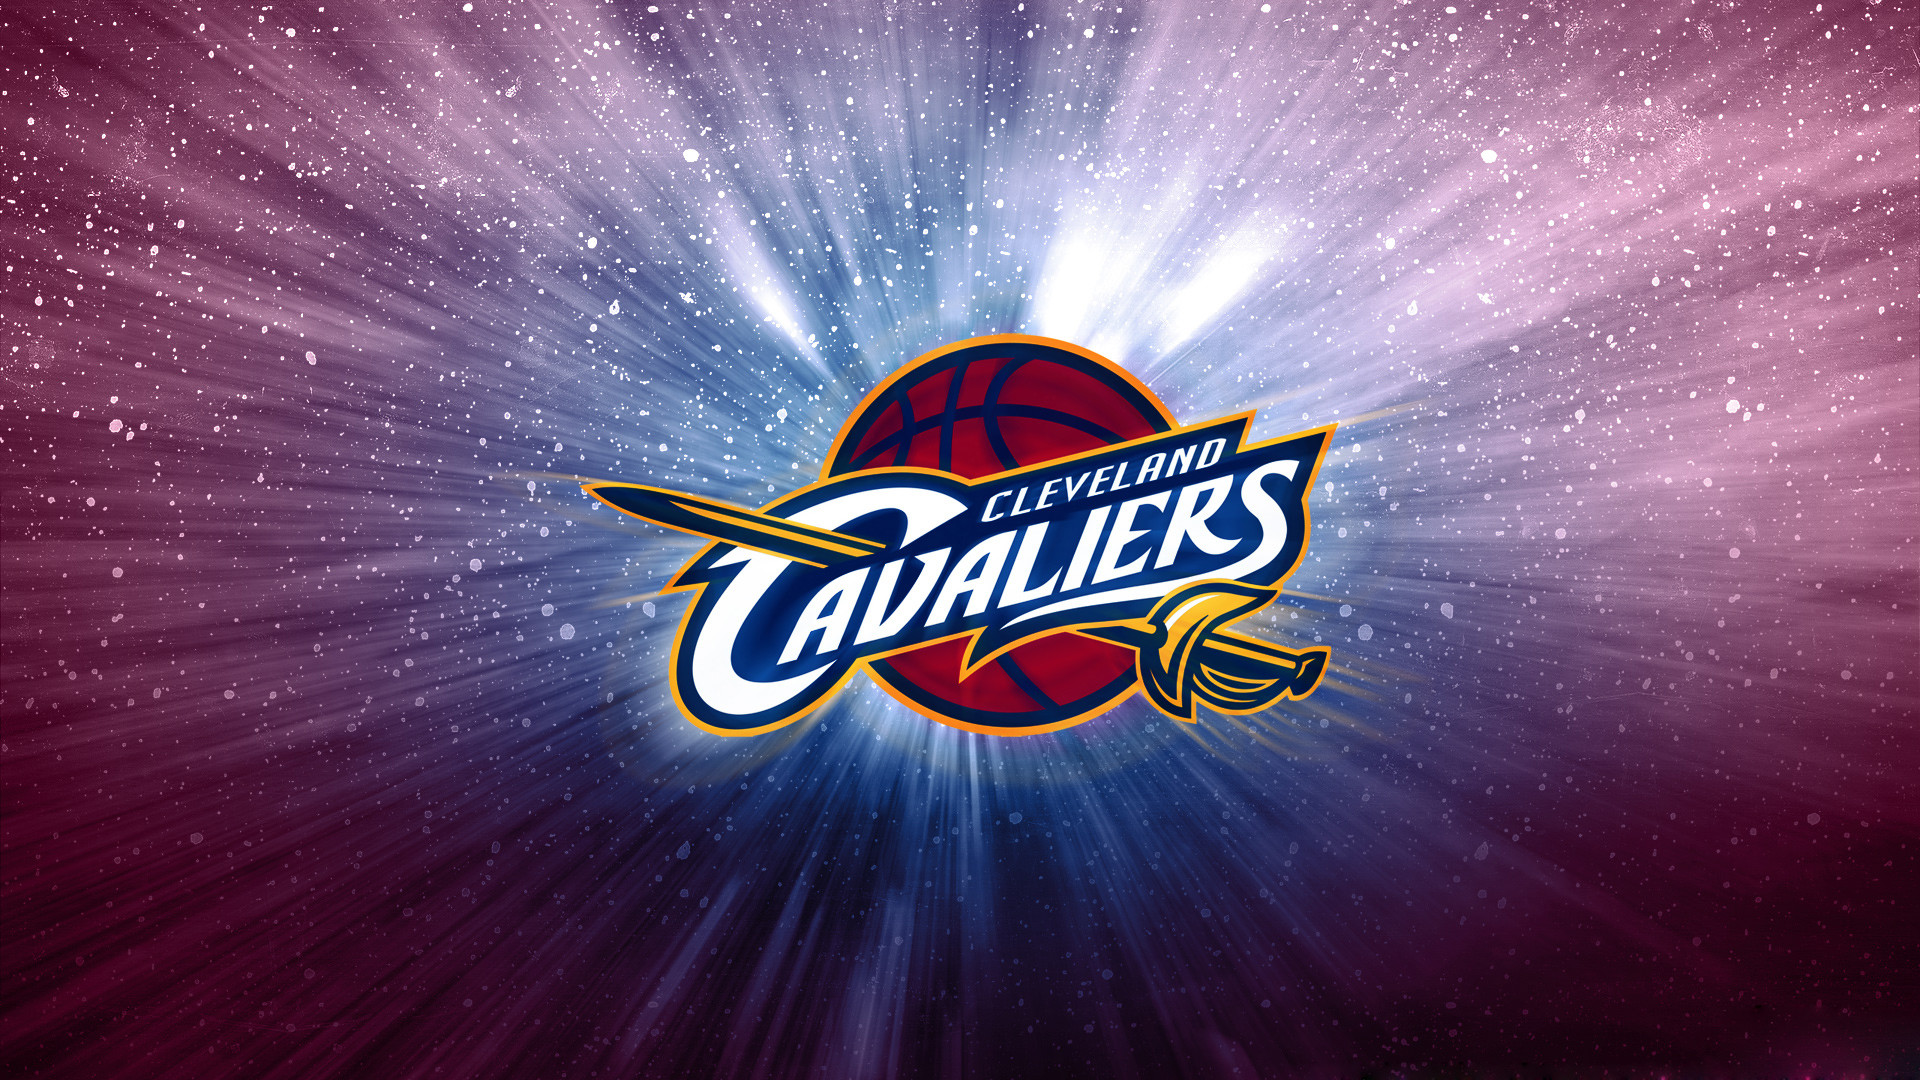 Cleveland Cavaliers Basketball Wallpapers 75 Images